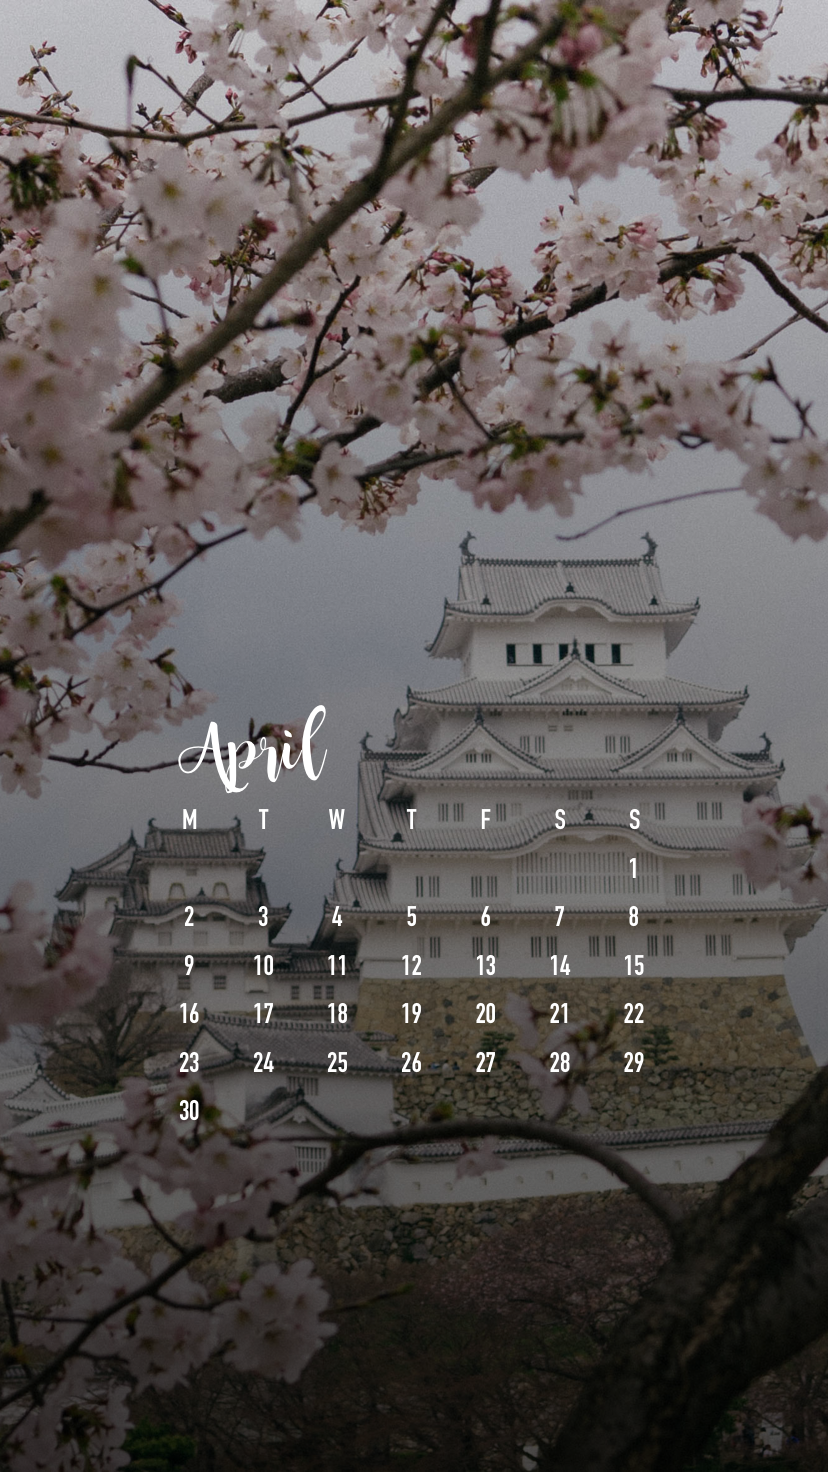 April 2018 Smartphone Wallpaper Calendar Download